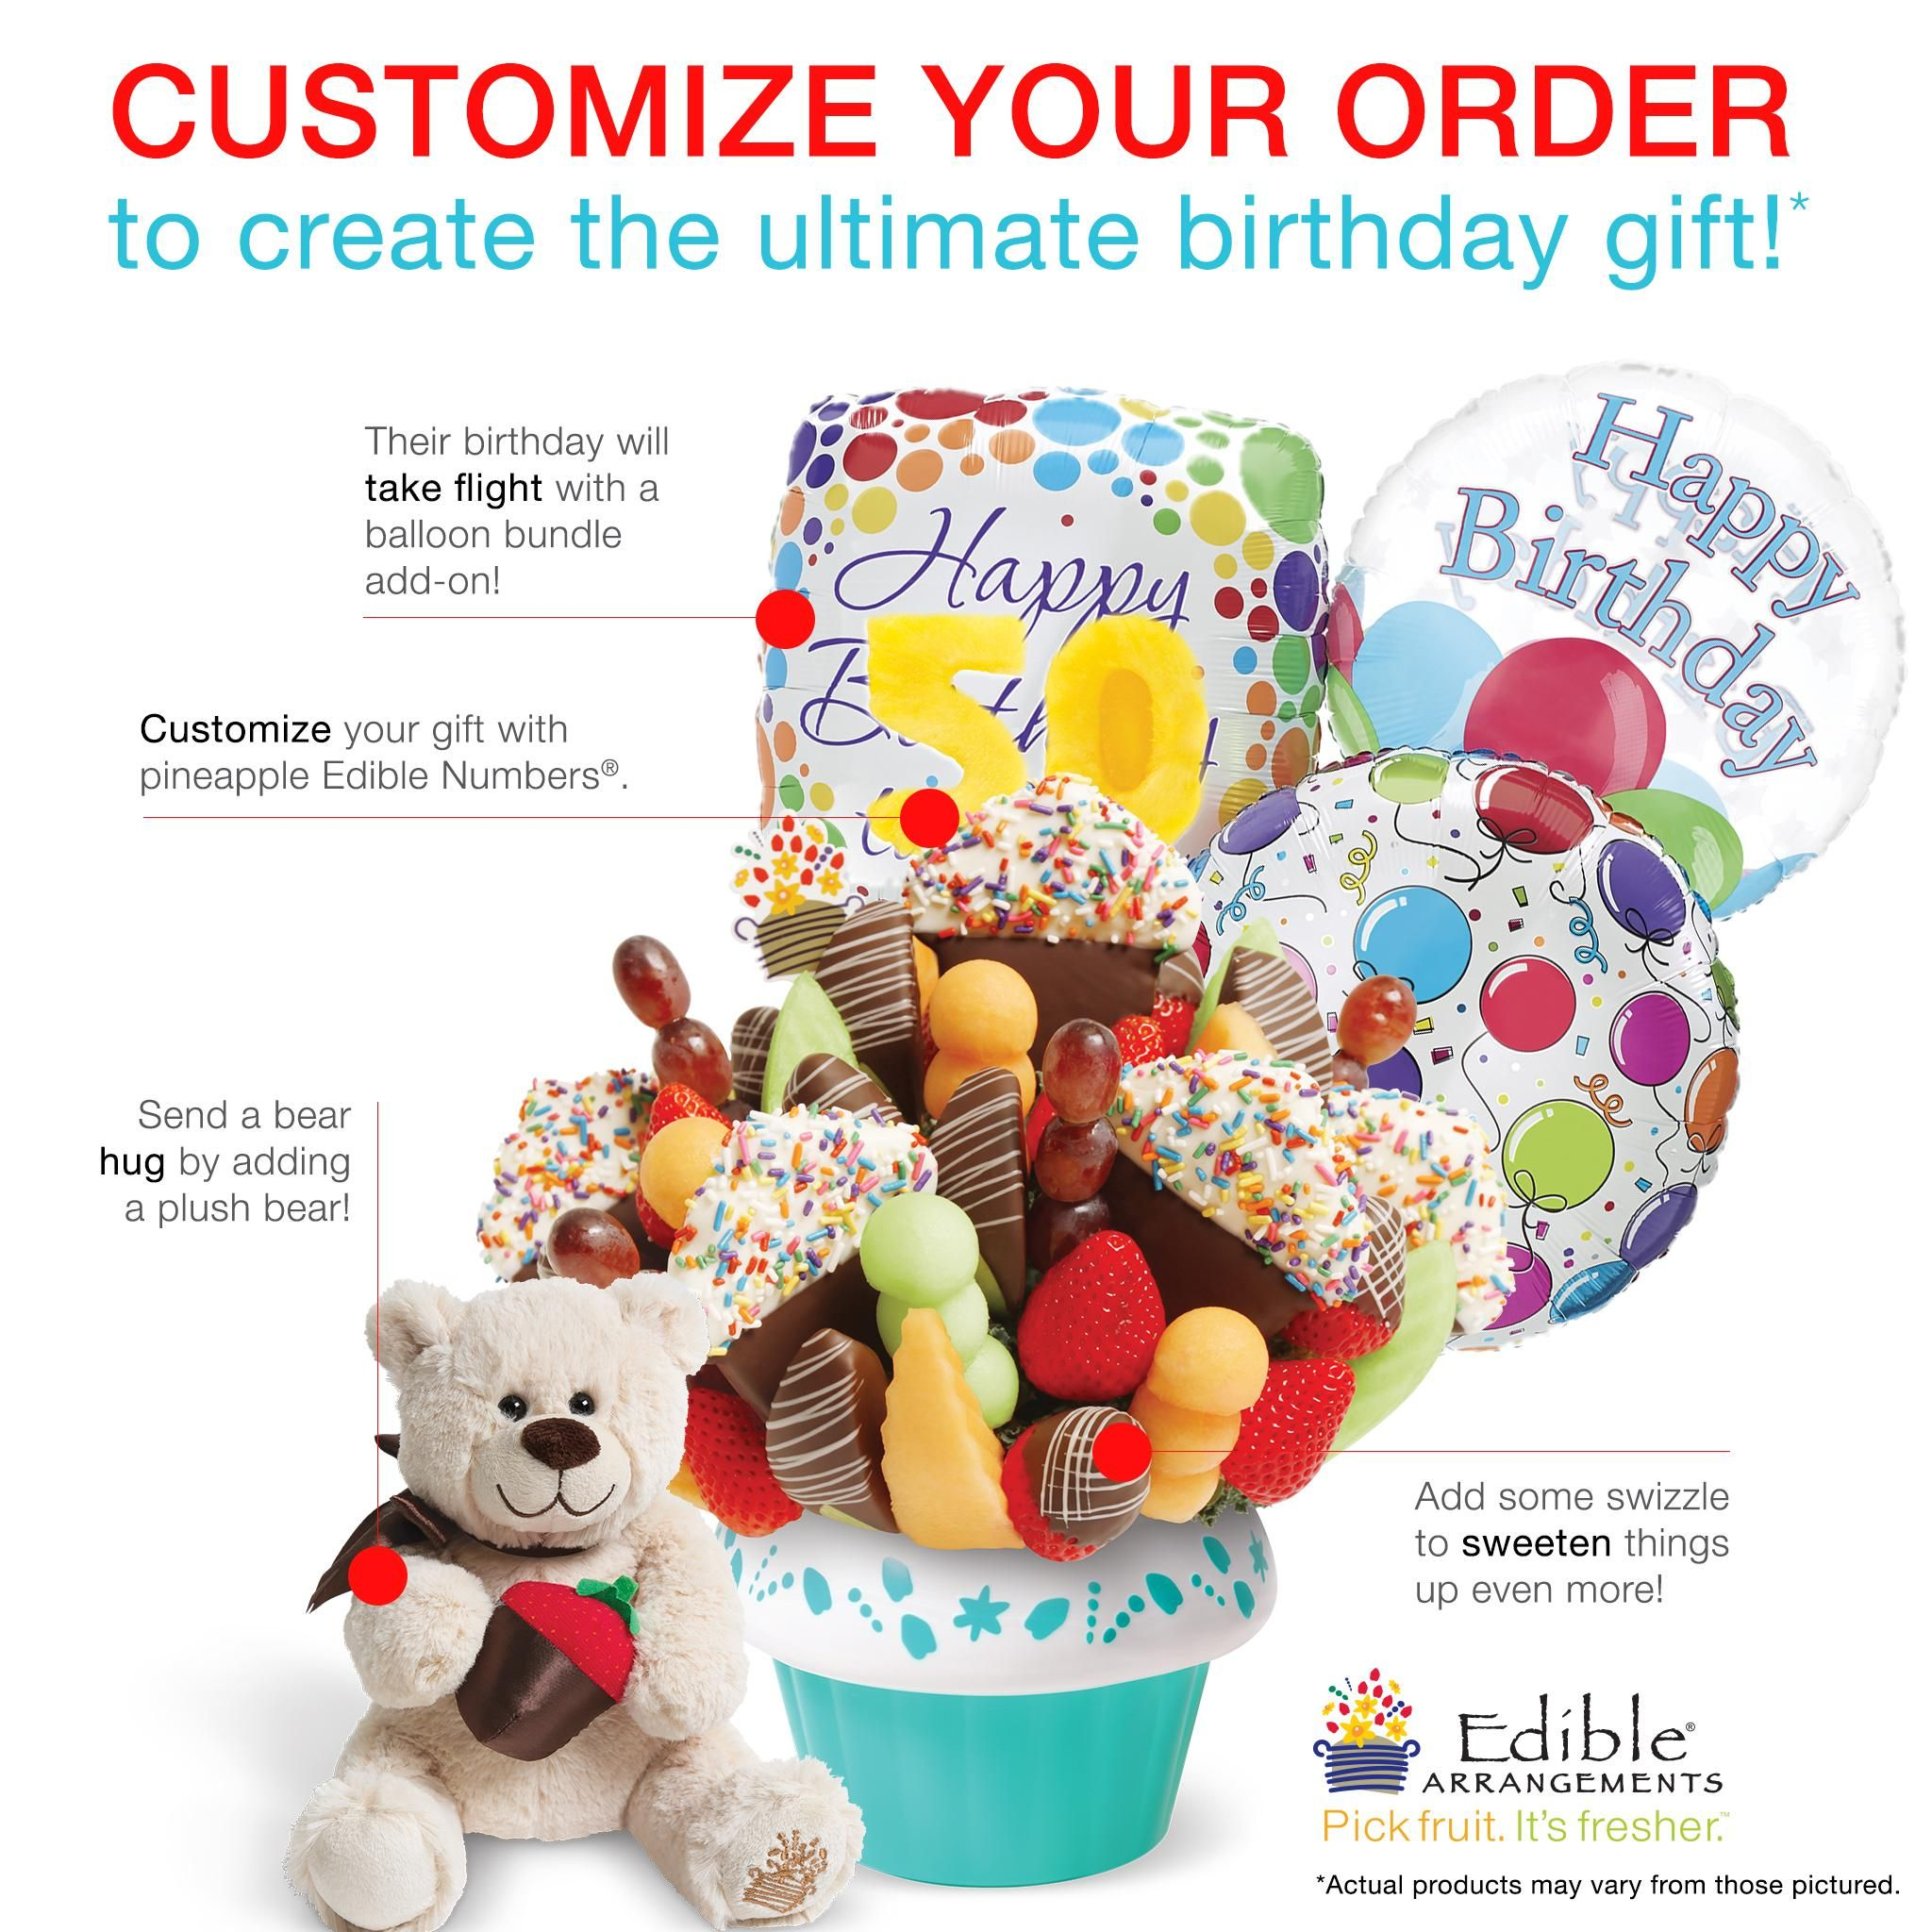 The BirthdayExperts At EdibleArrangements Know How To Create A Gift Remember Customize Your Birthday With Balloons Pineapple Edible NumbersTM